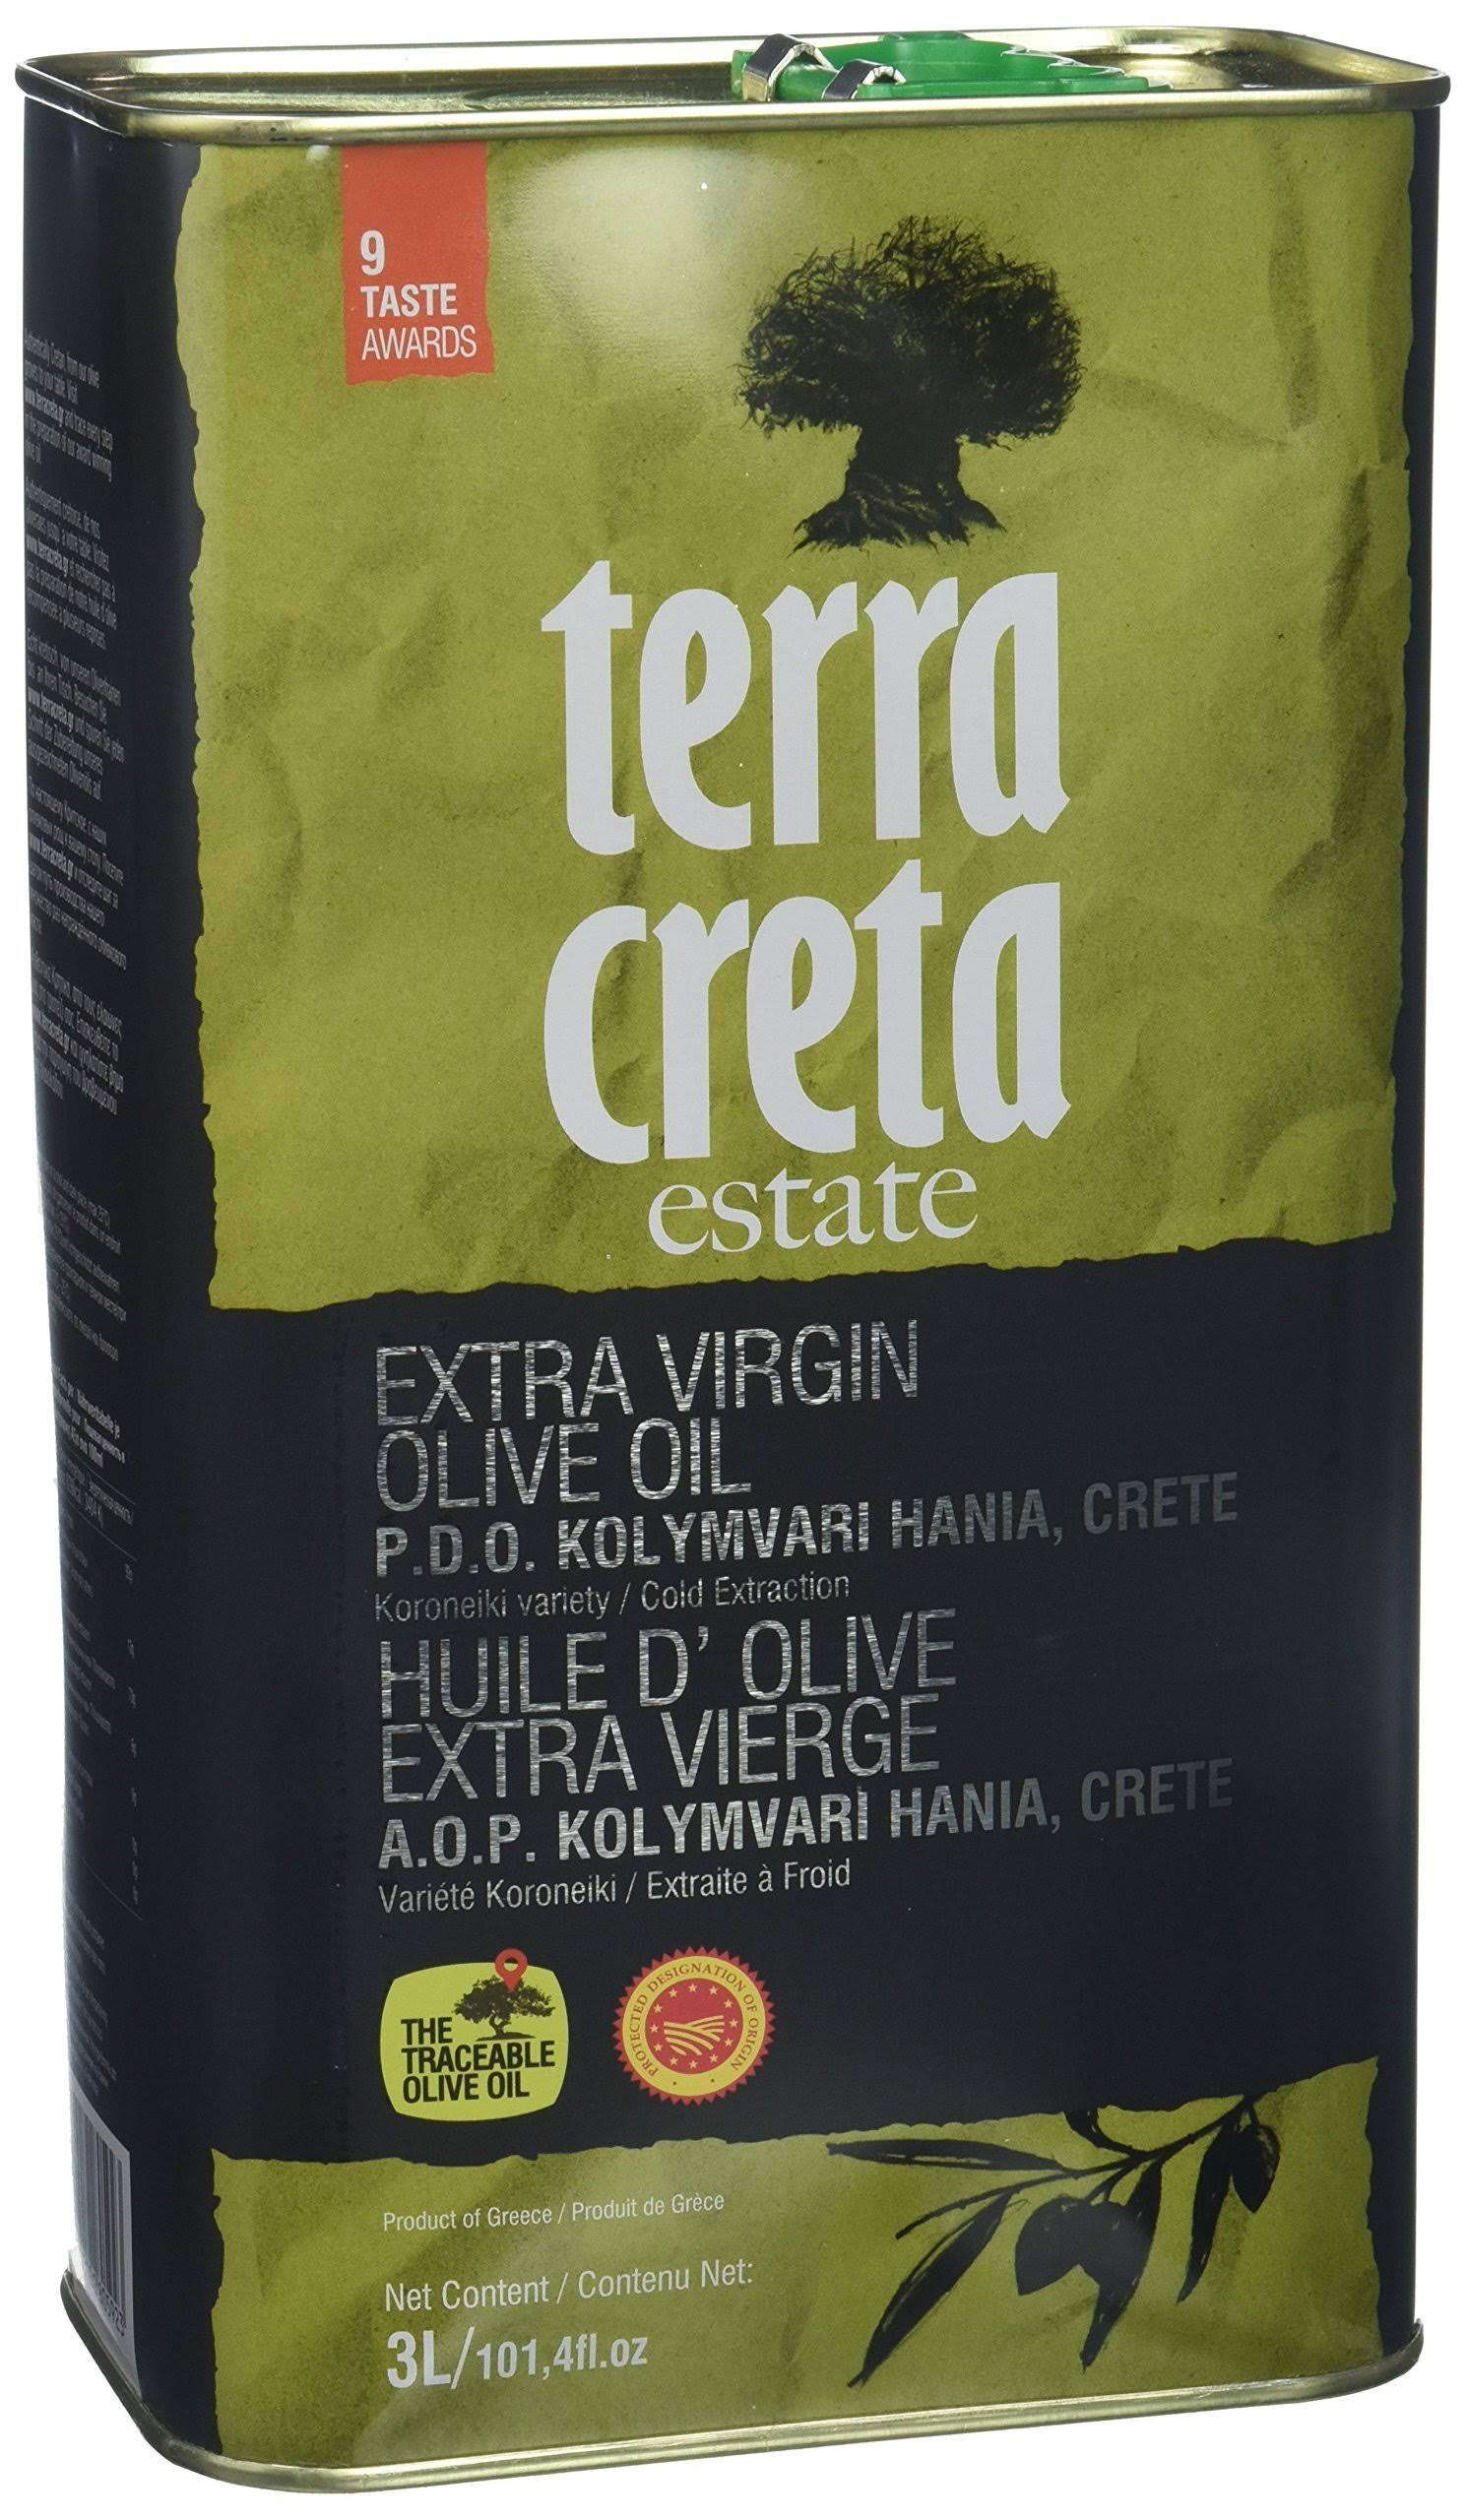 Terra Creta PDO Extra Virgin Greek Olive Oil - 3 L Tin - 14 Taste Awards Winner